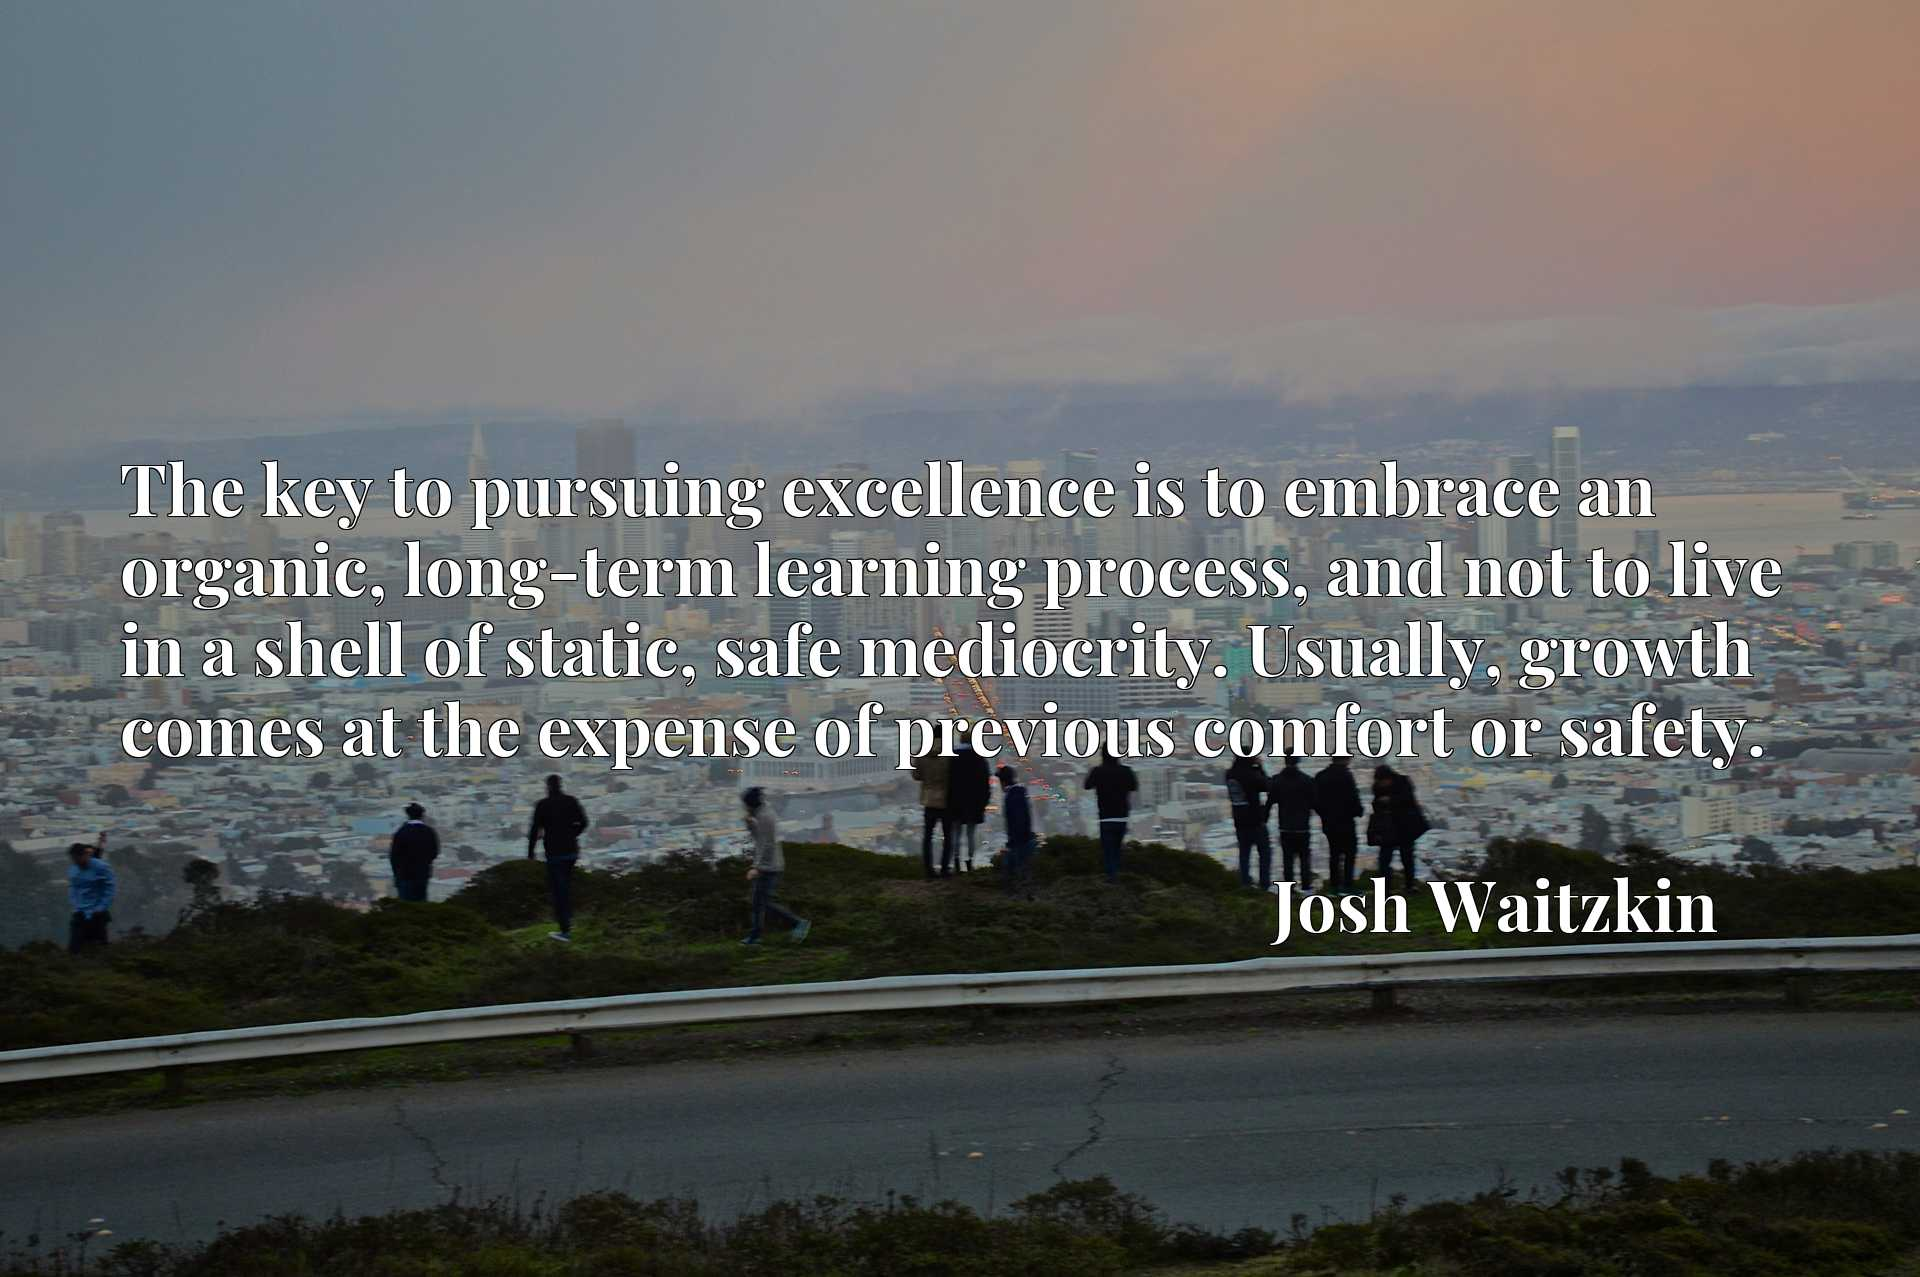 The key to pursuing excellence is to embrace an organic, long-term learning process, and not to live in a shell of static, safe mediocrity. Usually, growth comes at the expense of previous comfort or safety.